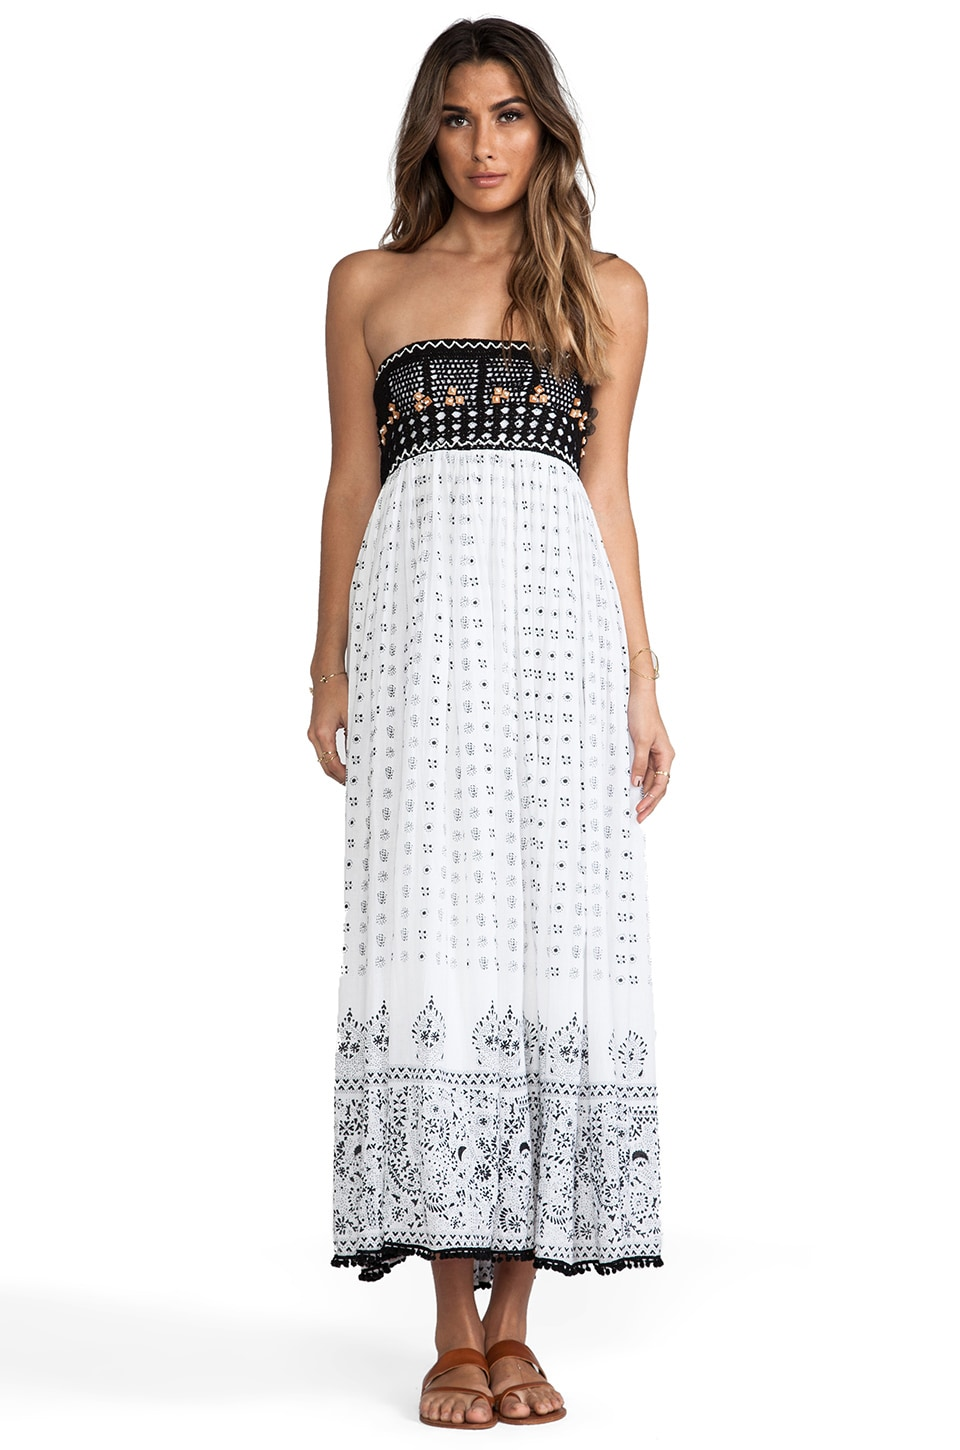 Raga Colorblocked Strapless Maxi Dress in Black & White